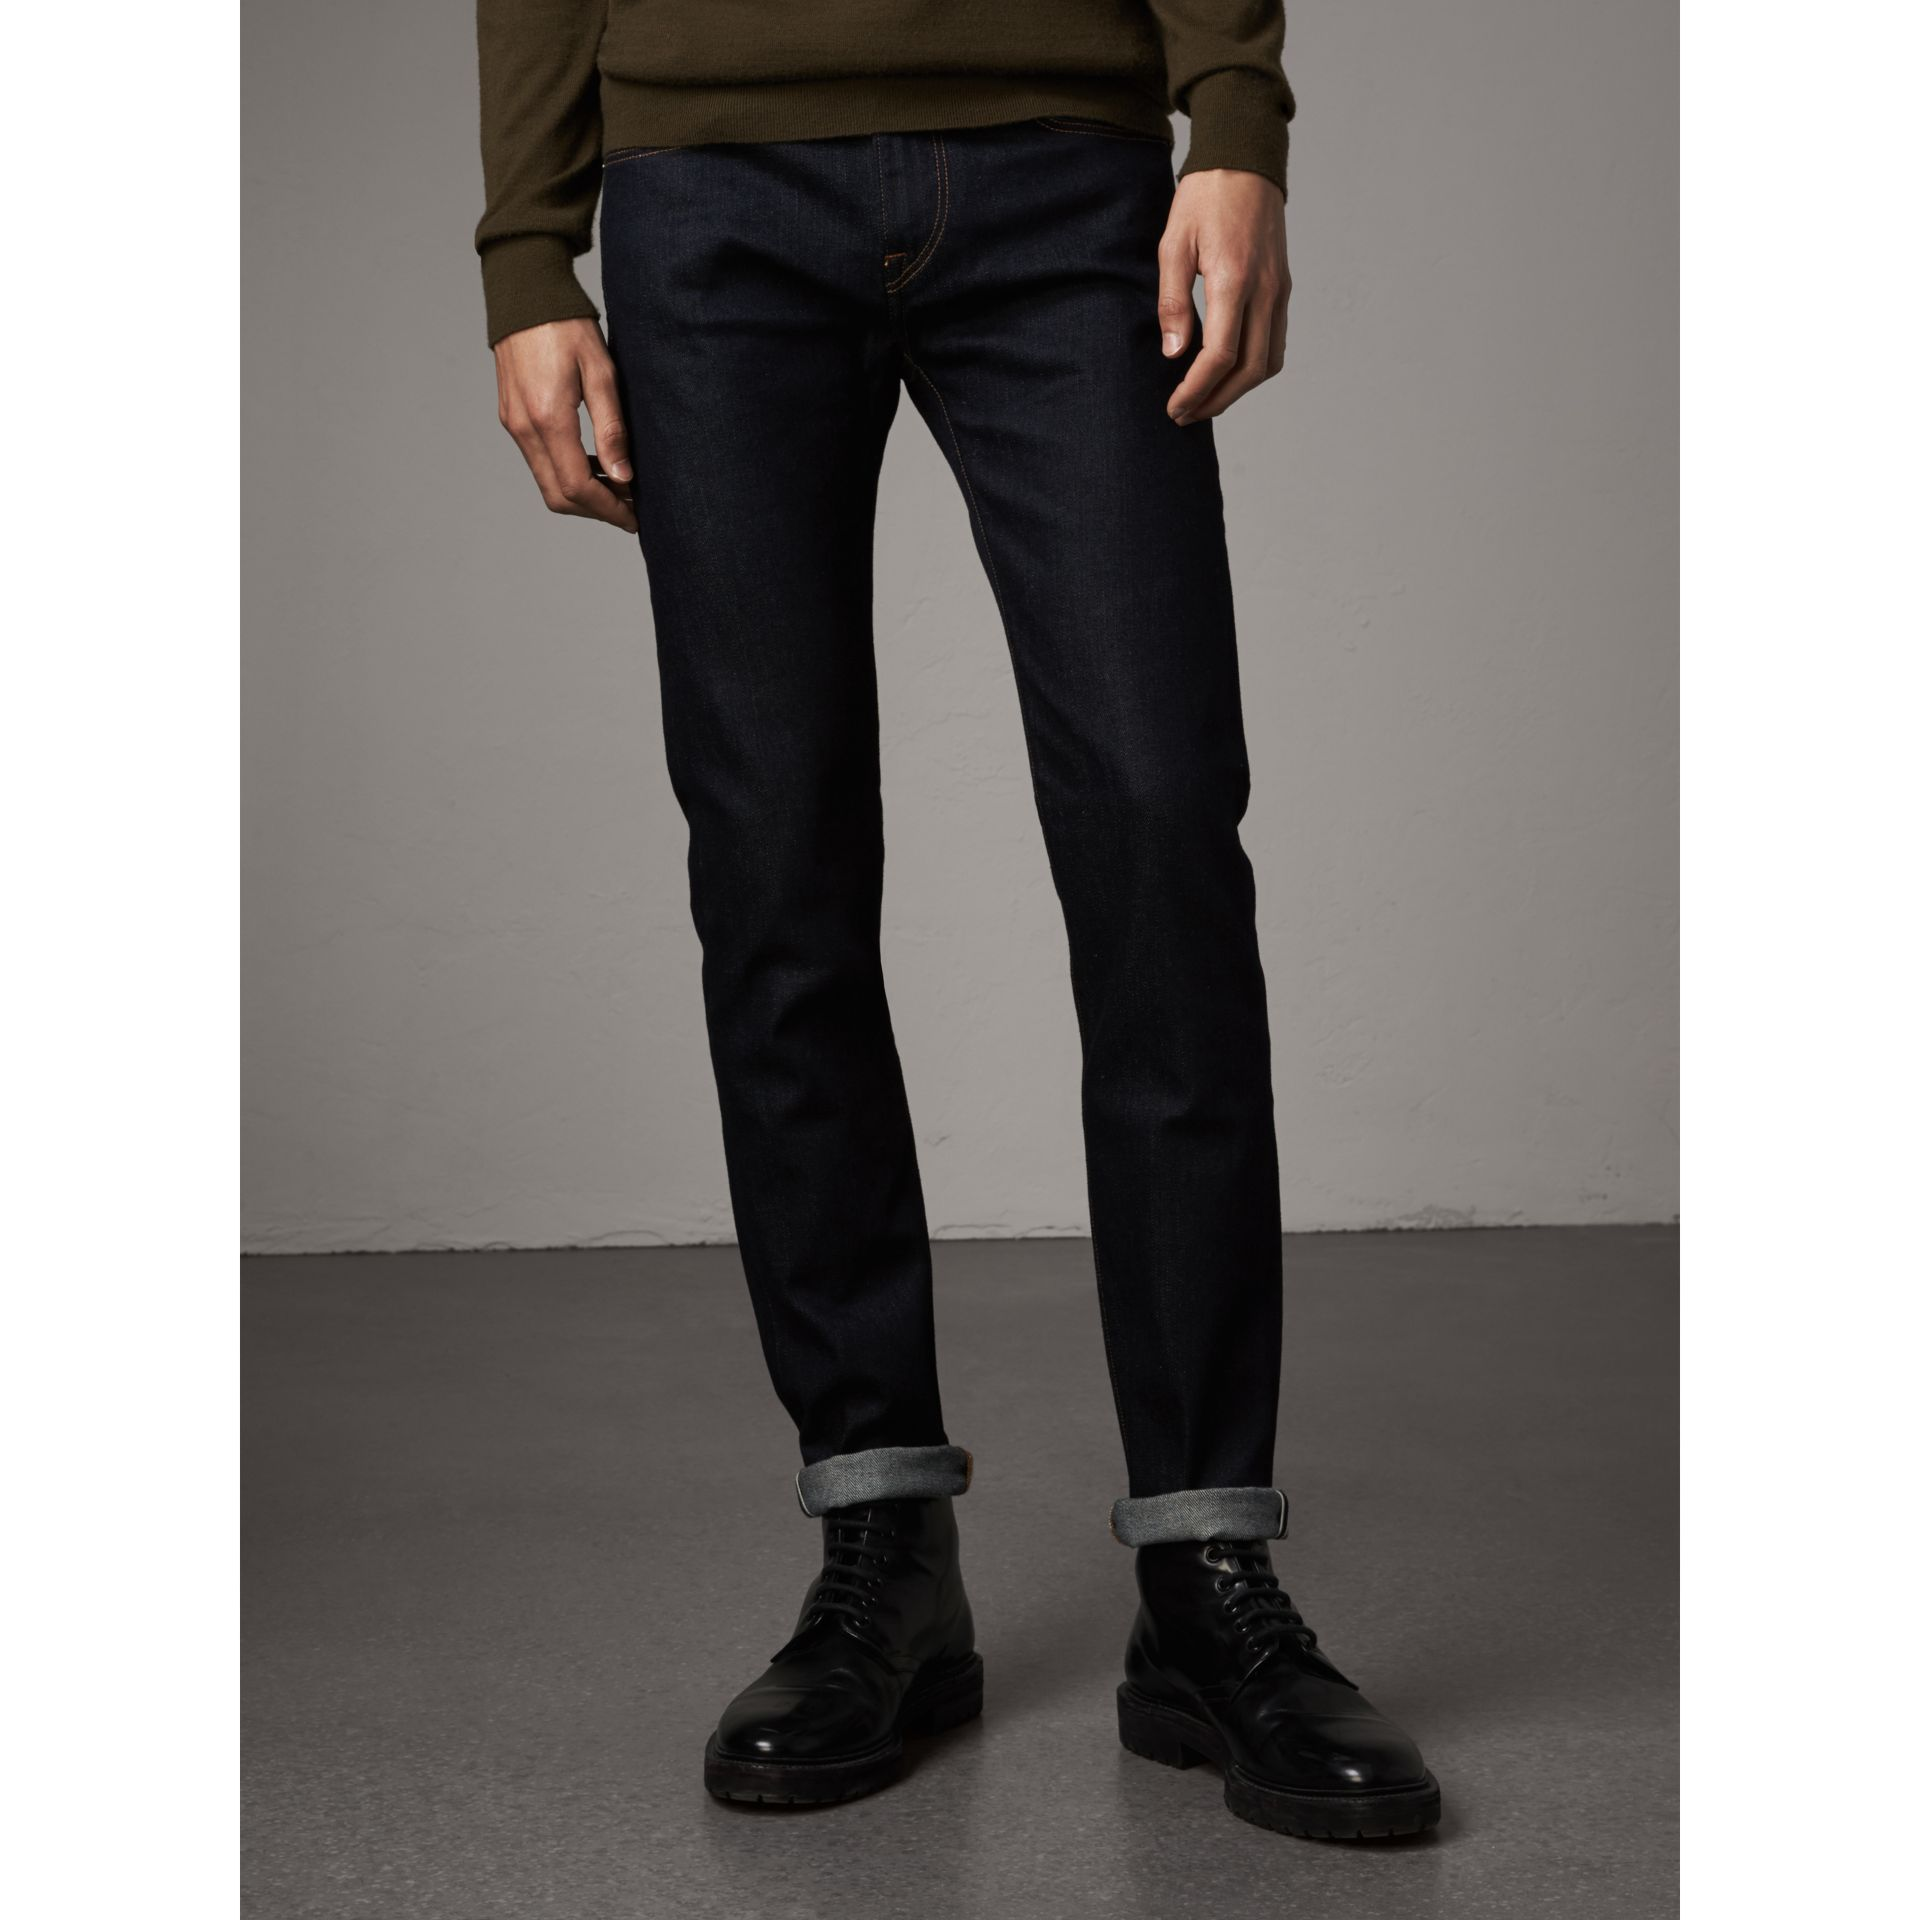 Jean slim en denim selvedge japonais extensible (Indigo Sombre) - Homme | Burberry - photo de la galerie 1